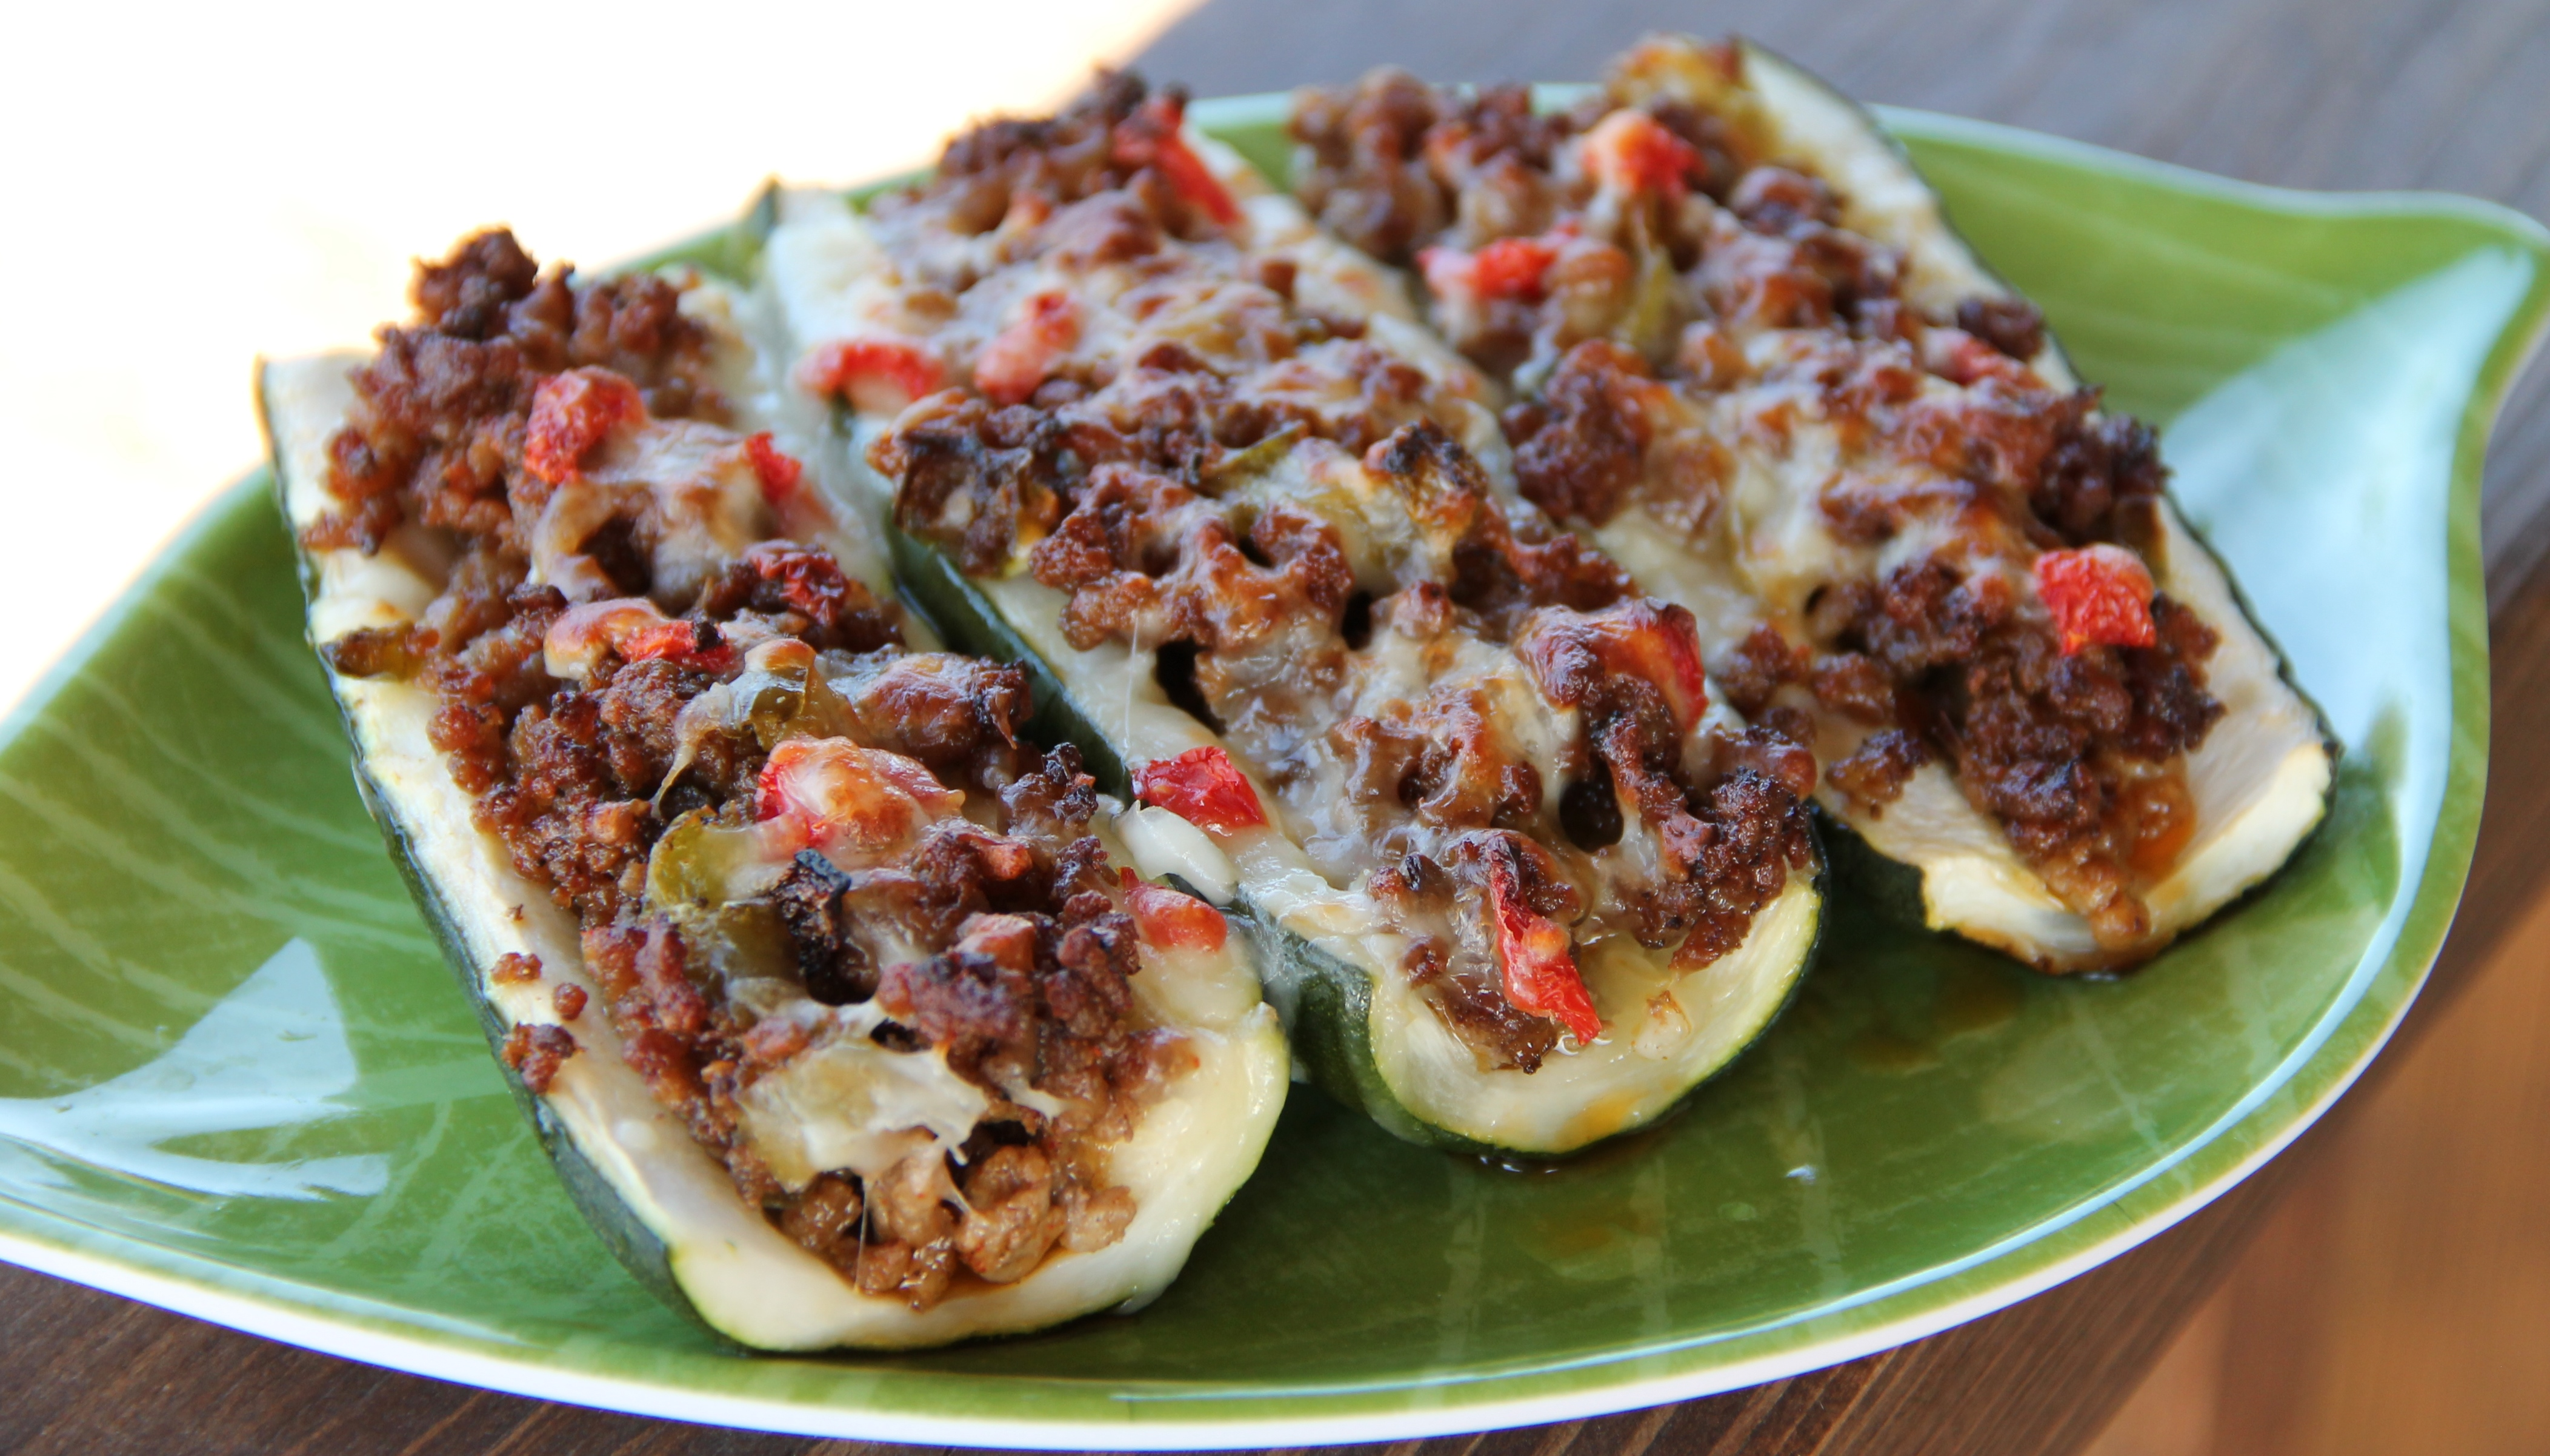 Recipe of zucchini with minced meat in the oven, in batter, in a pan. A photo 33